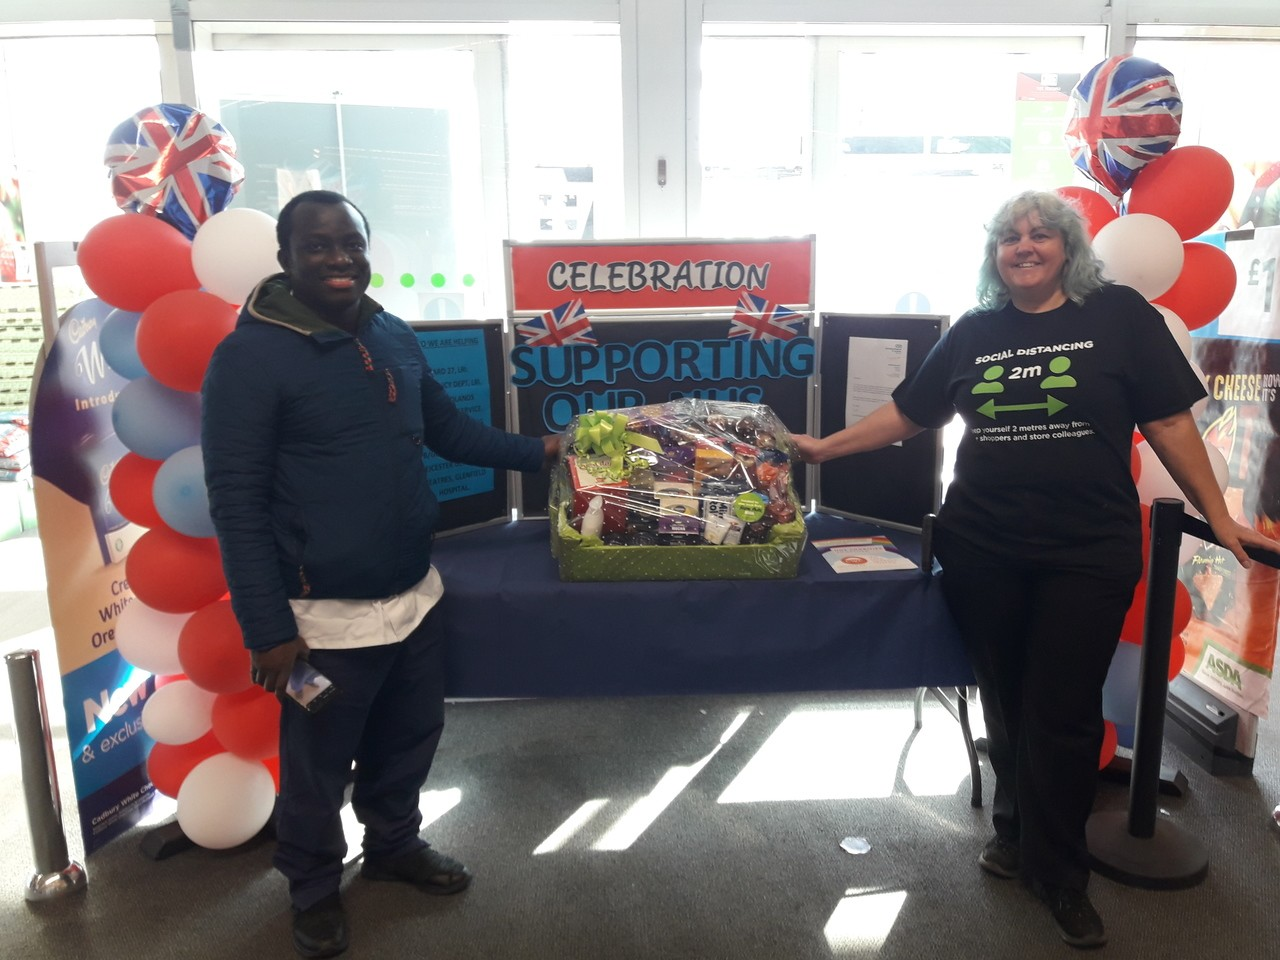 Donation of NHS goodie hamper   Asda Leicester